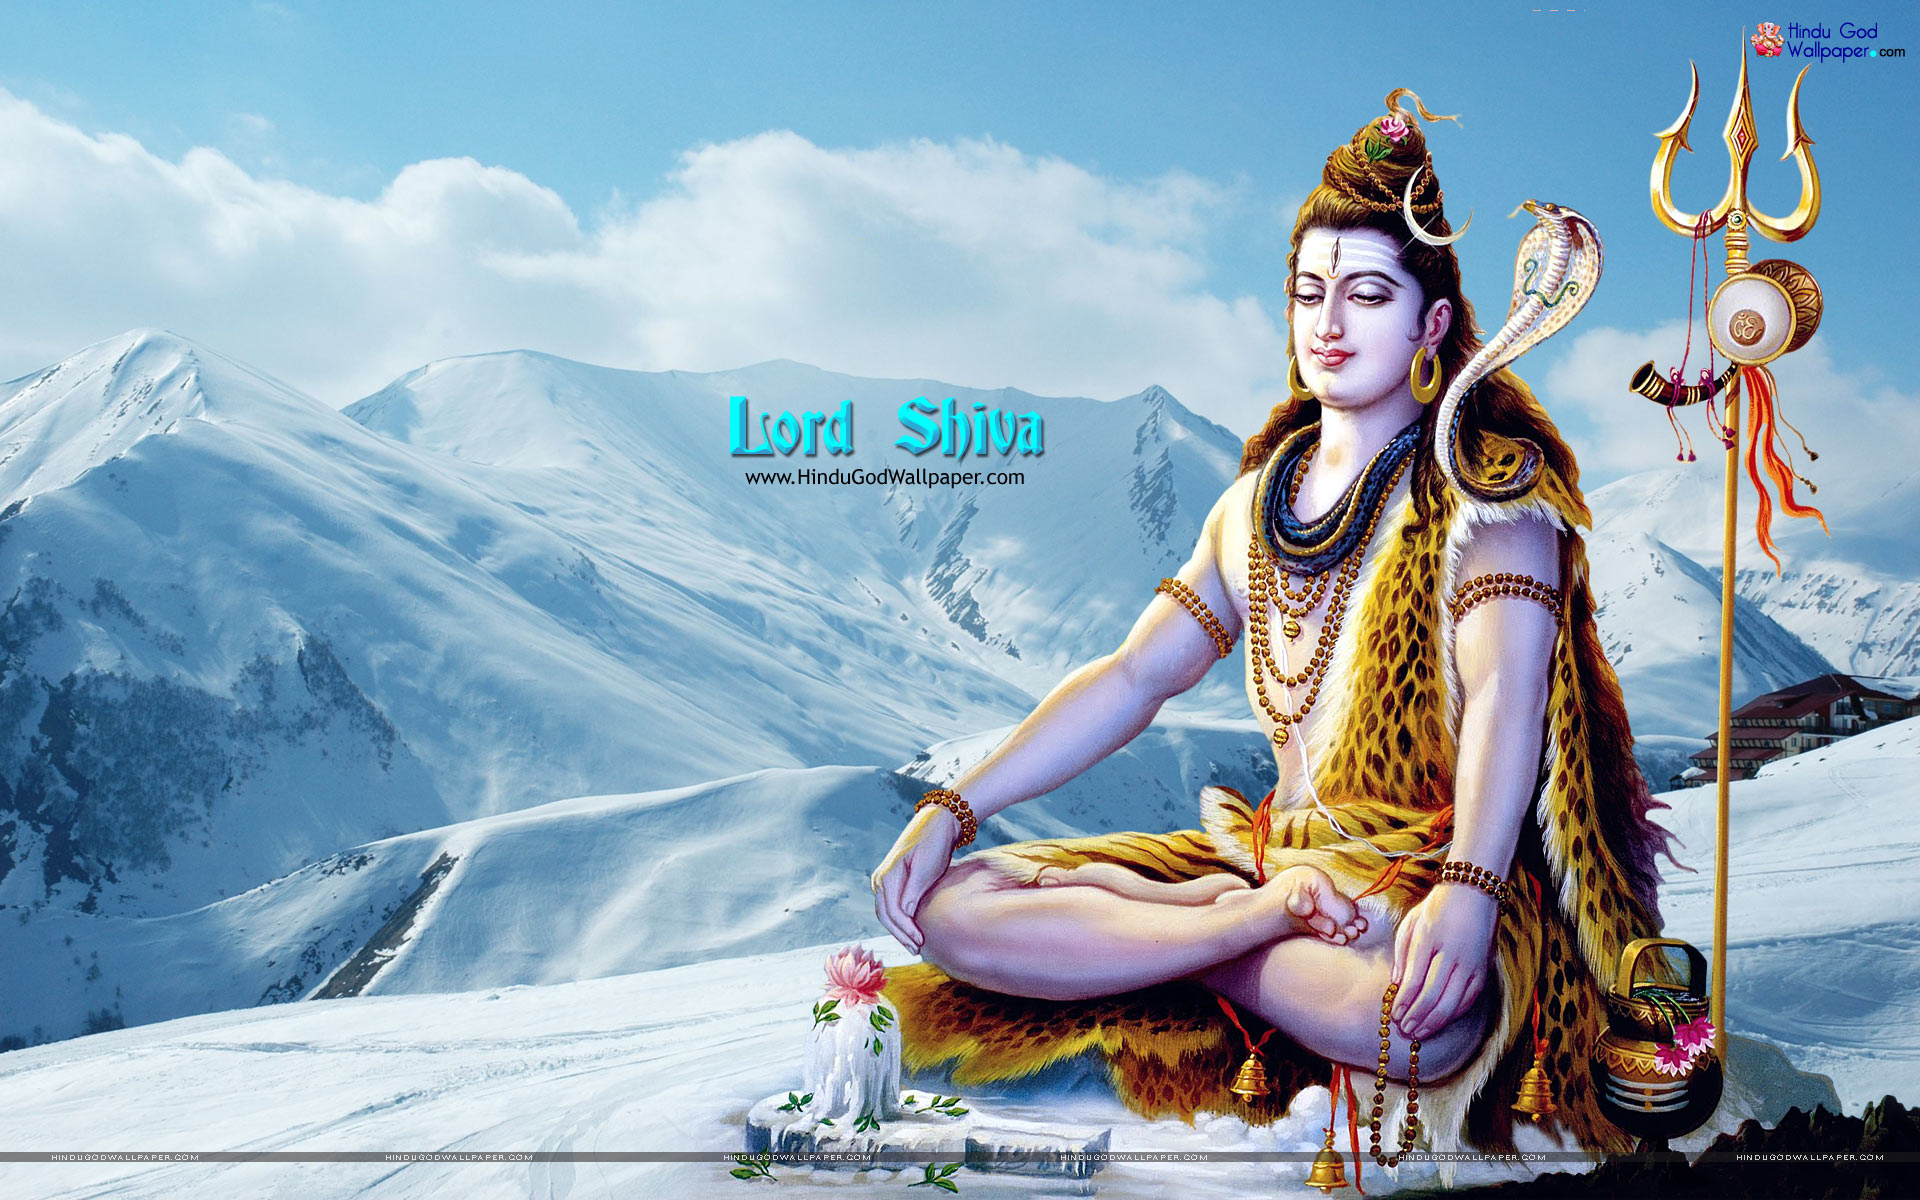 Shiva Wallpaper Hindu Wallpaper Lord Shiva Ji Wallpapers: Hindu God Wallpapers: Lord Shiva Wallpapers, Pictures